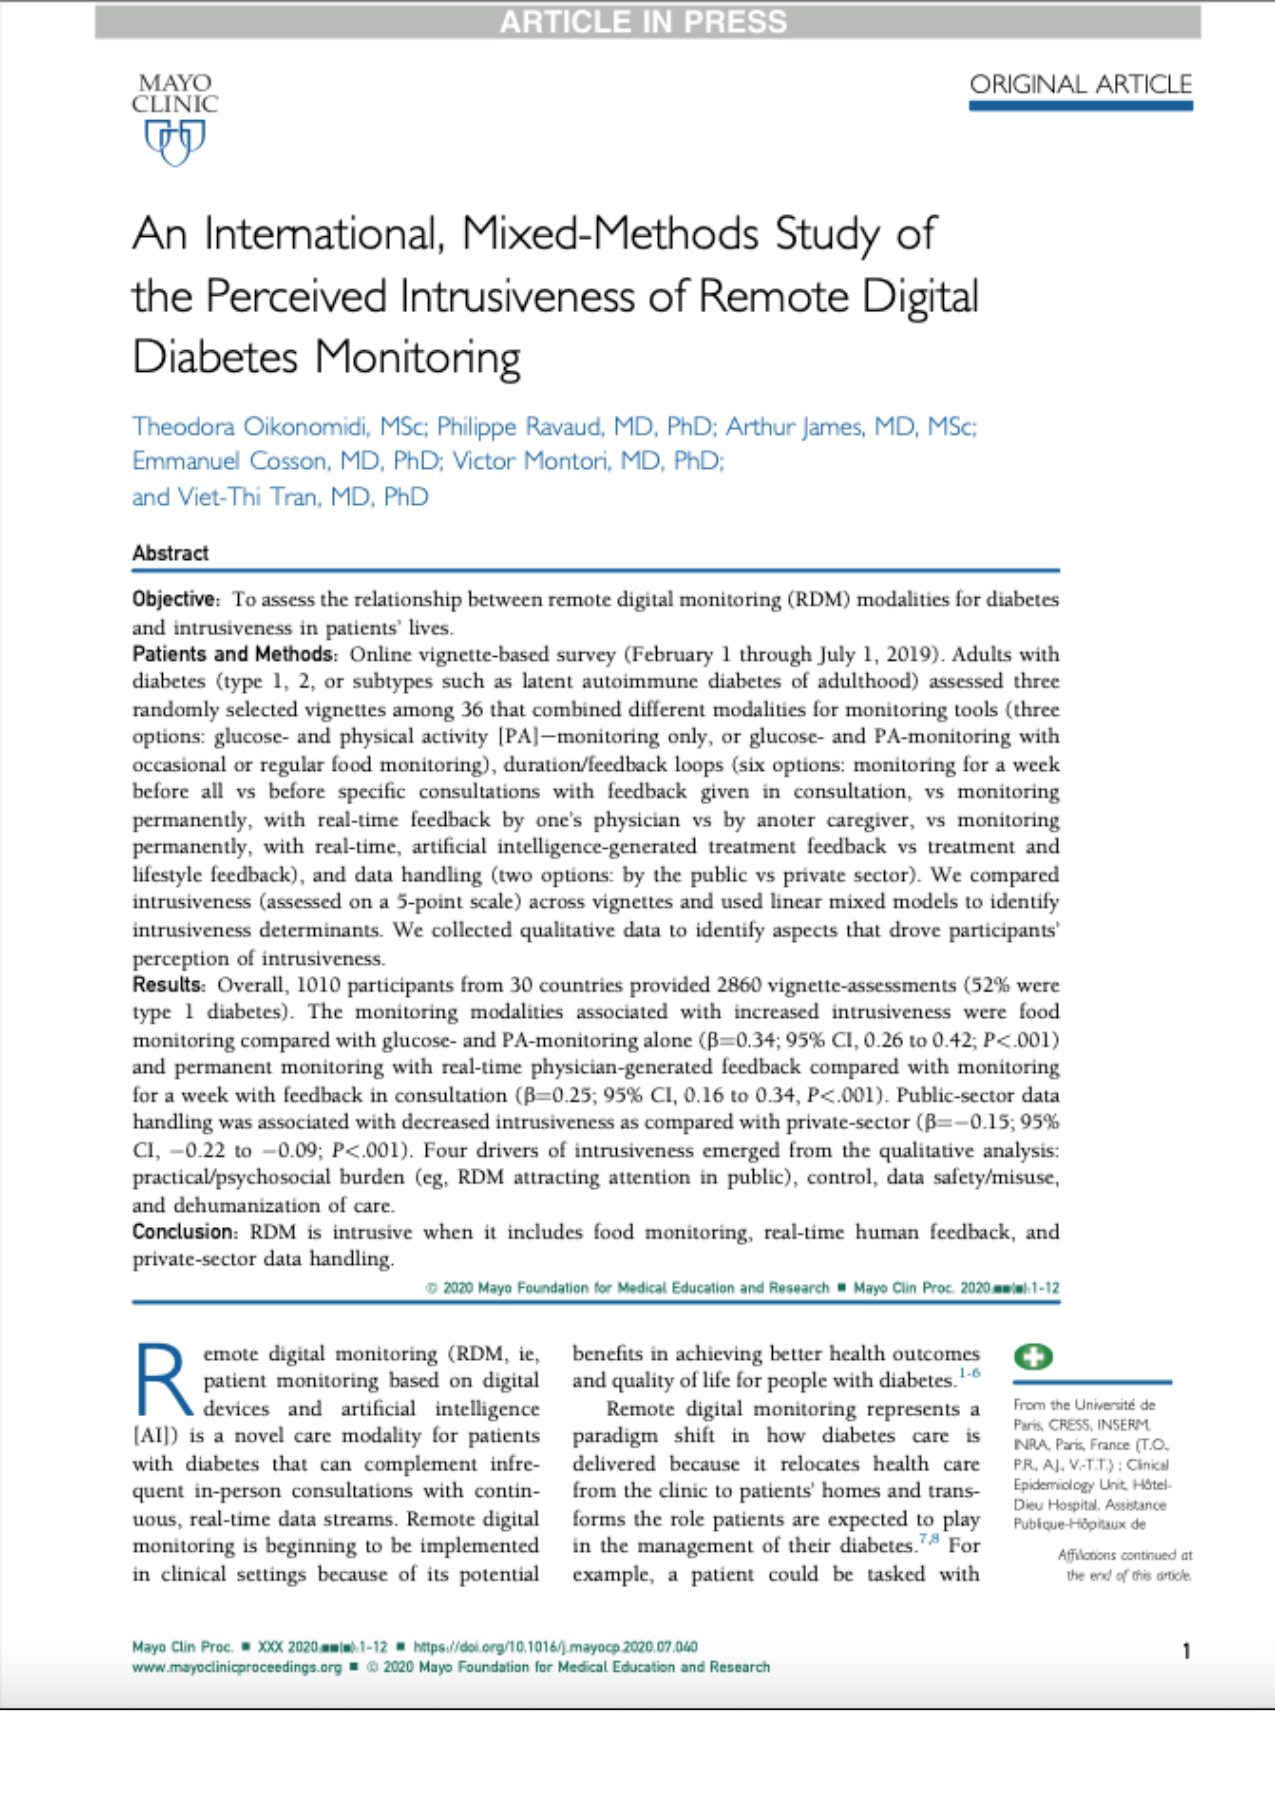 An International, Mixed-Methods Study of the Perceived Intrusiveness of Remote Digital Diabetes Monitoring